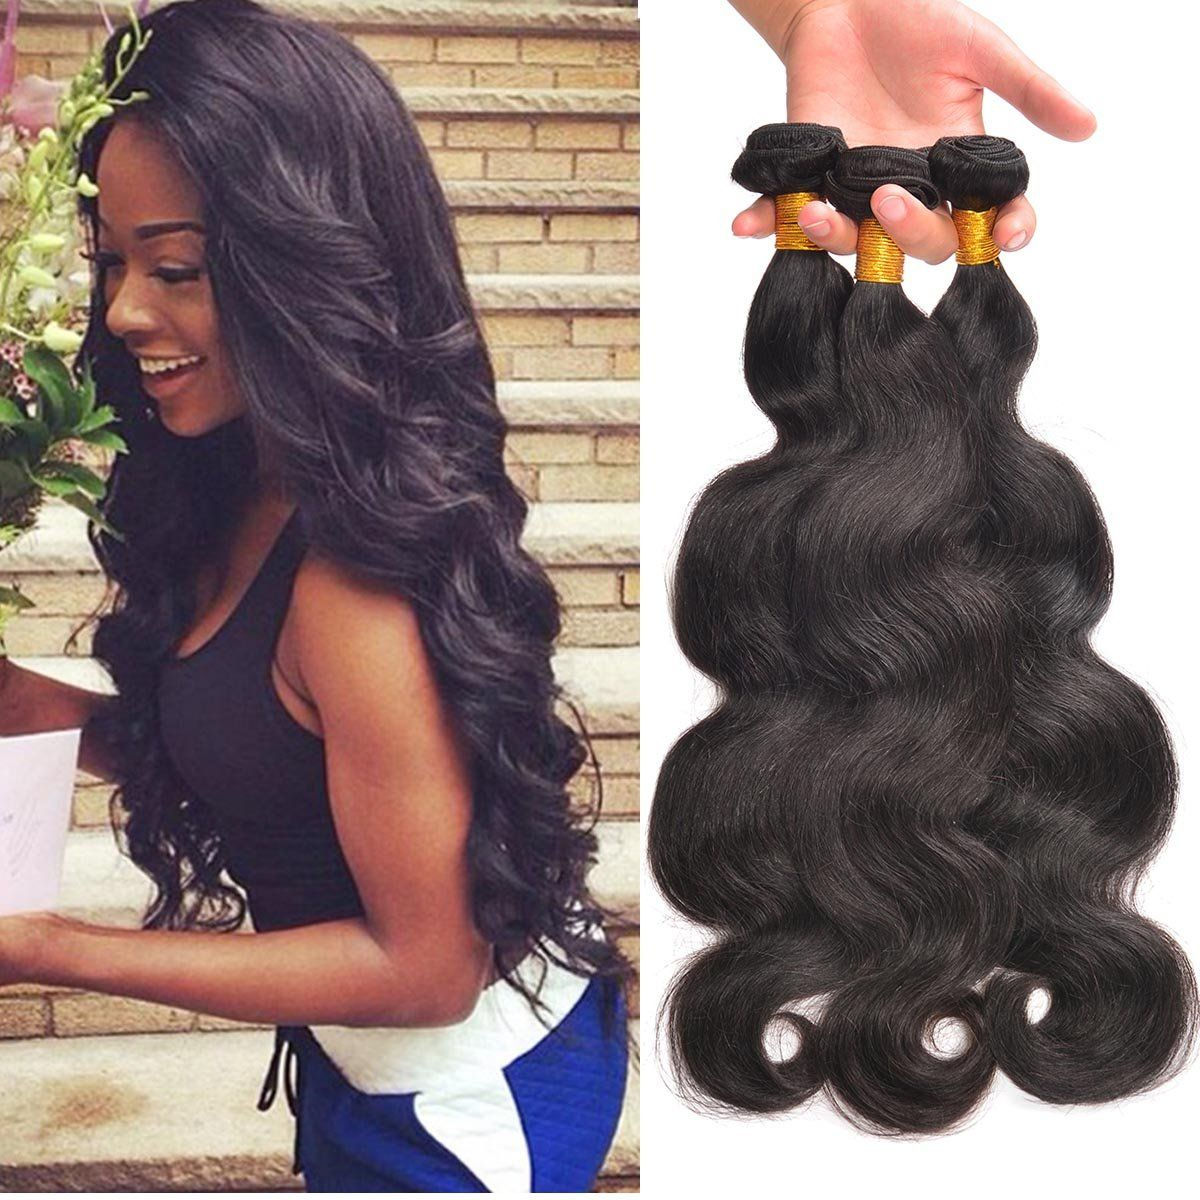 300g Bundle Human Hair Natural Black Virgin Brazilian Hair 20 22 24